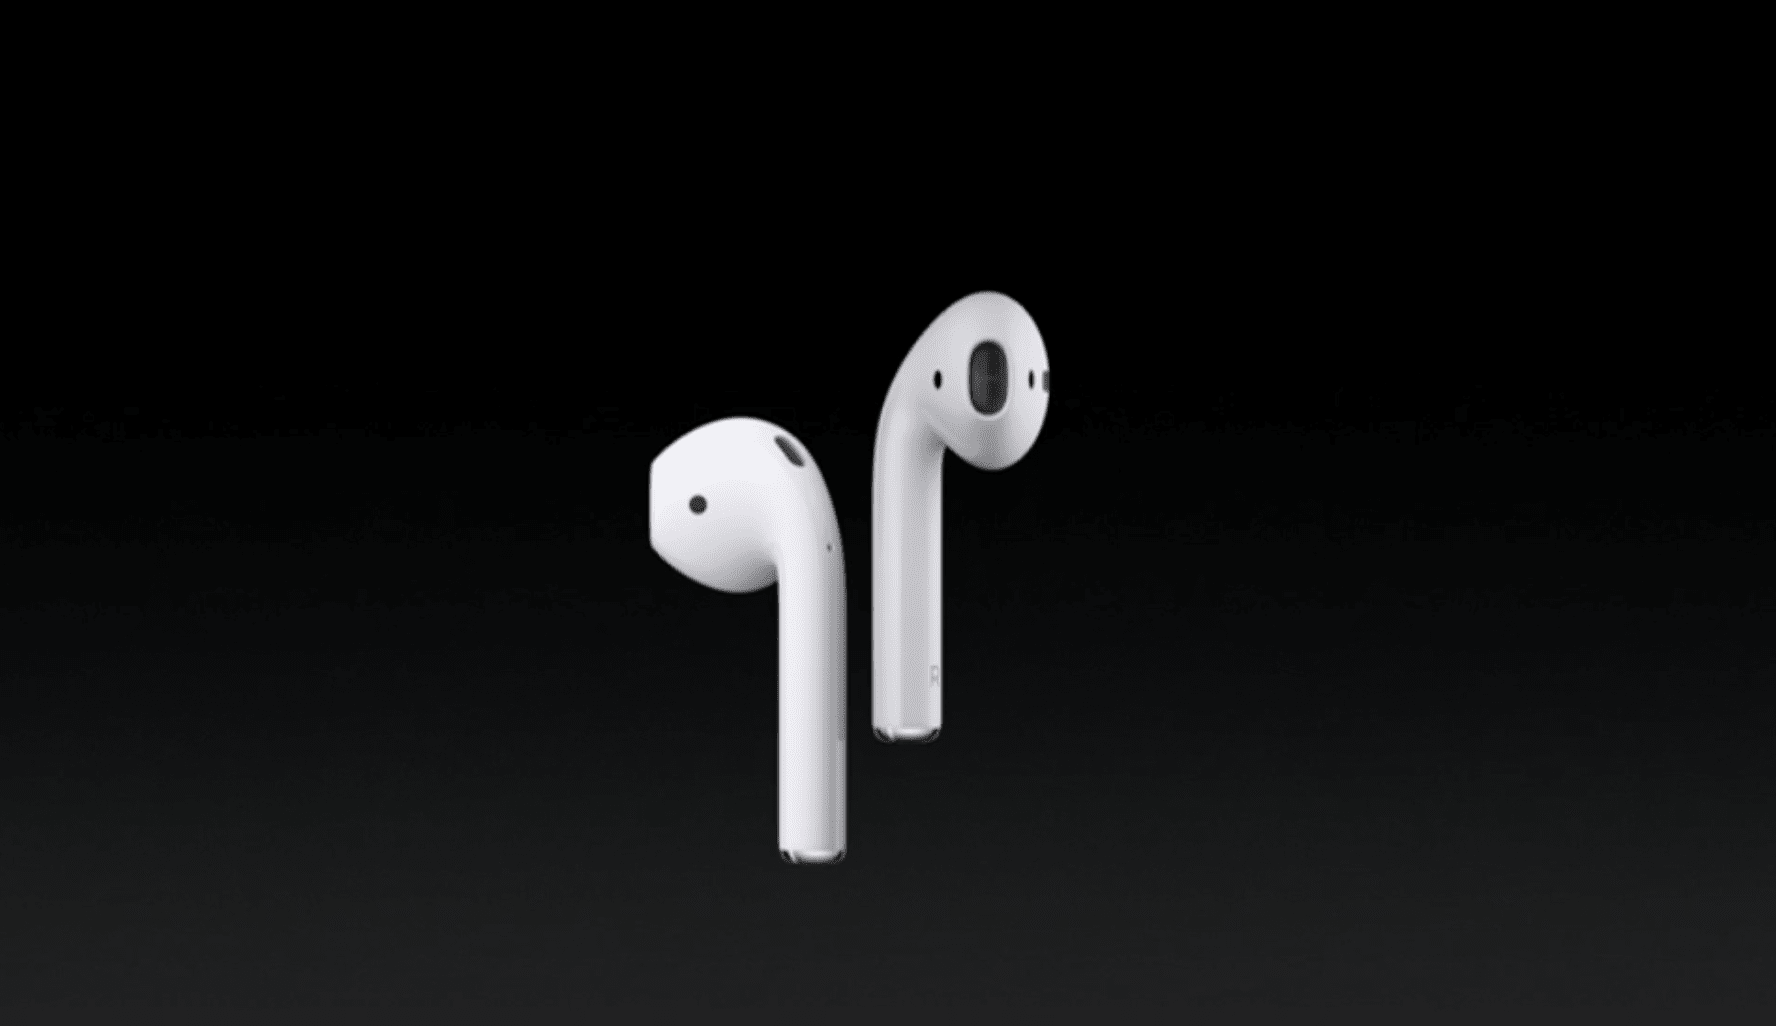 5f4f034ed62 Apple's AirPods are smart wireless earbuds with a new W1 chip